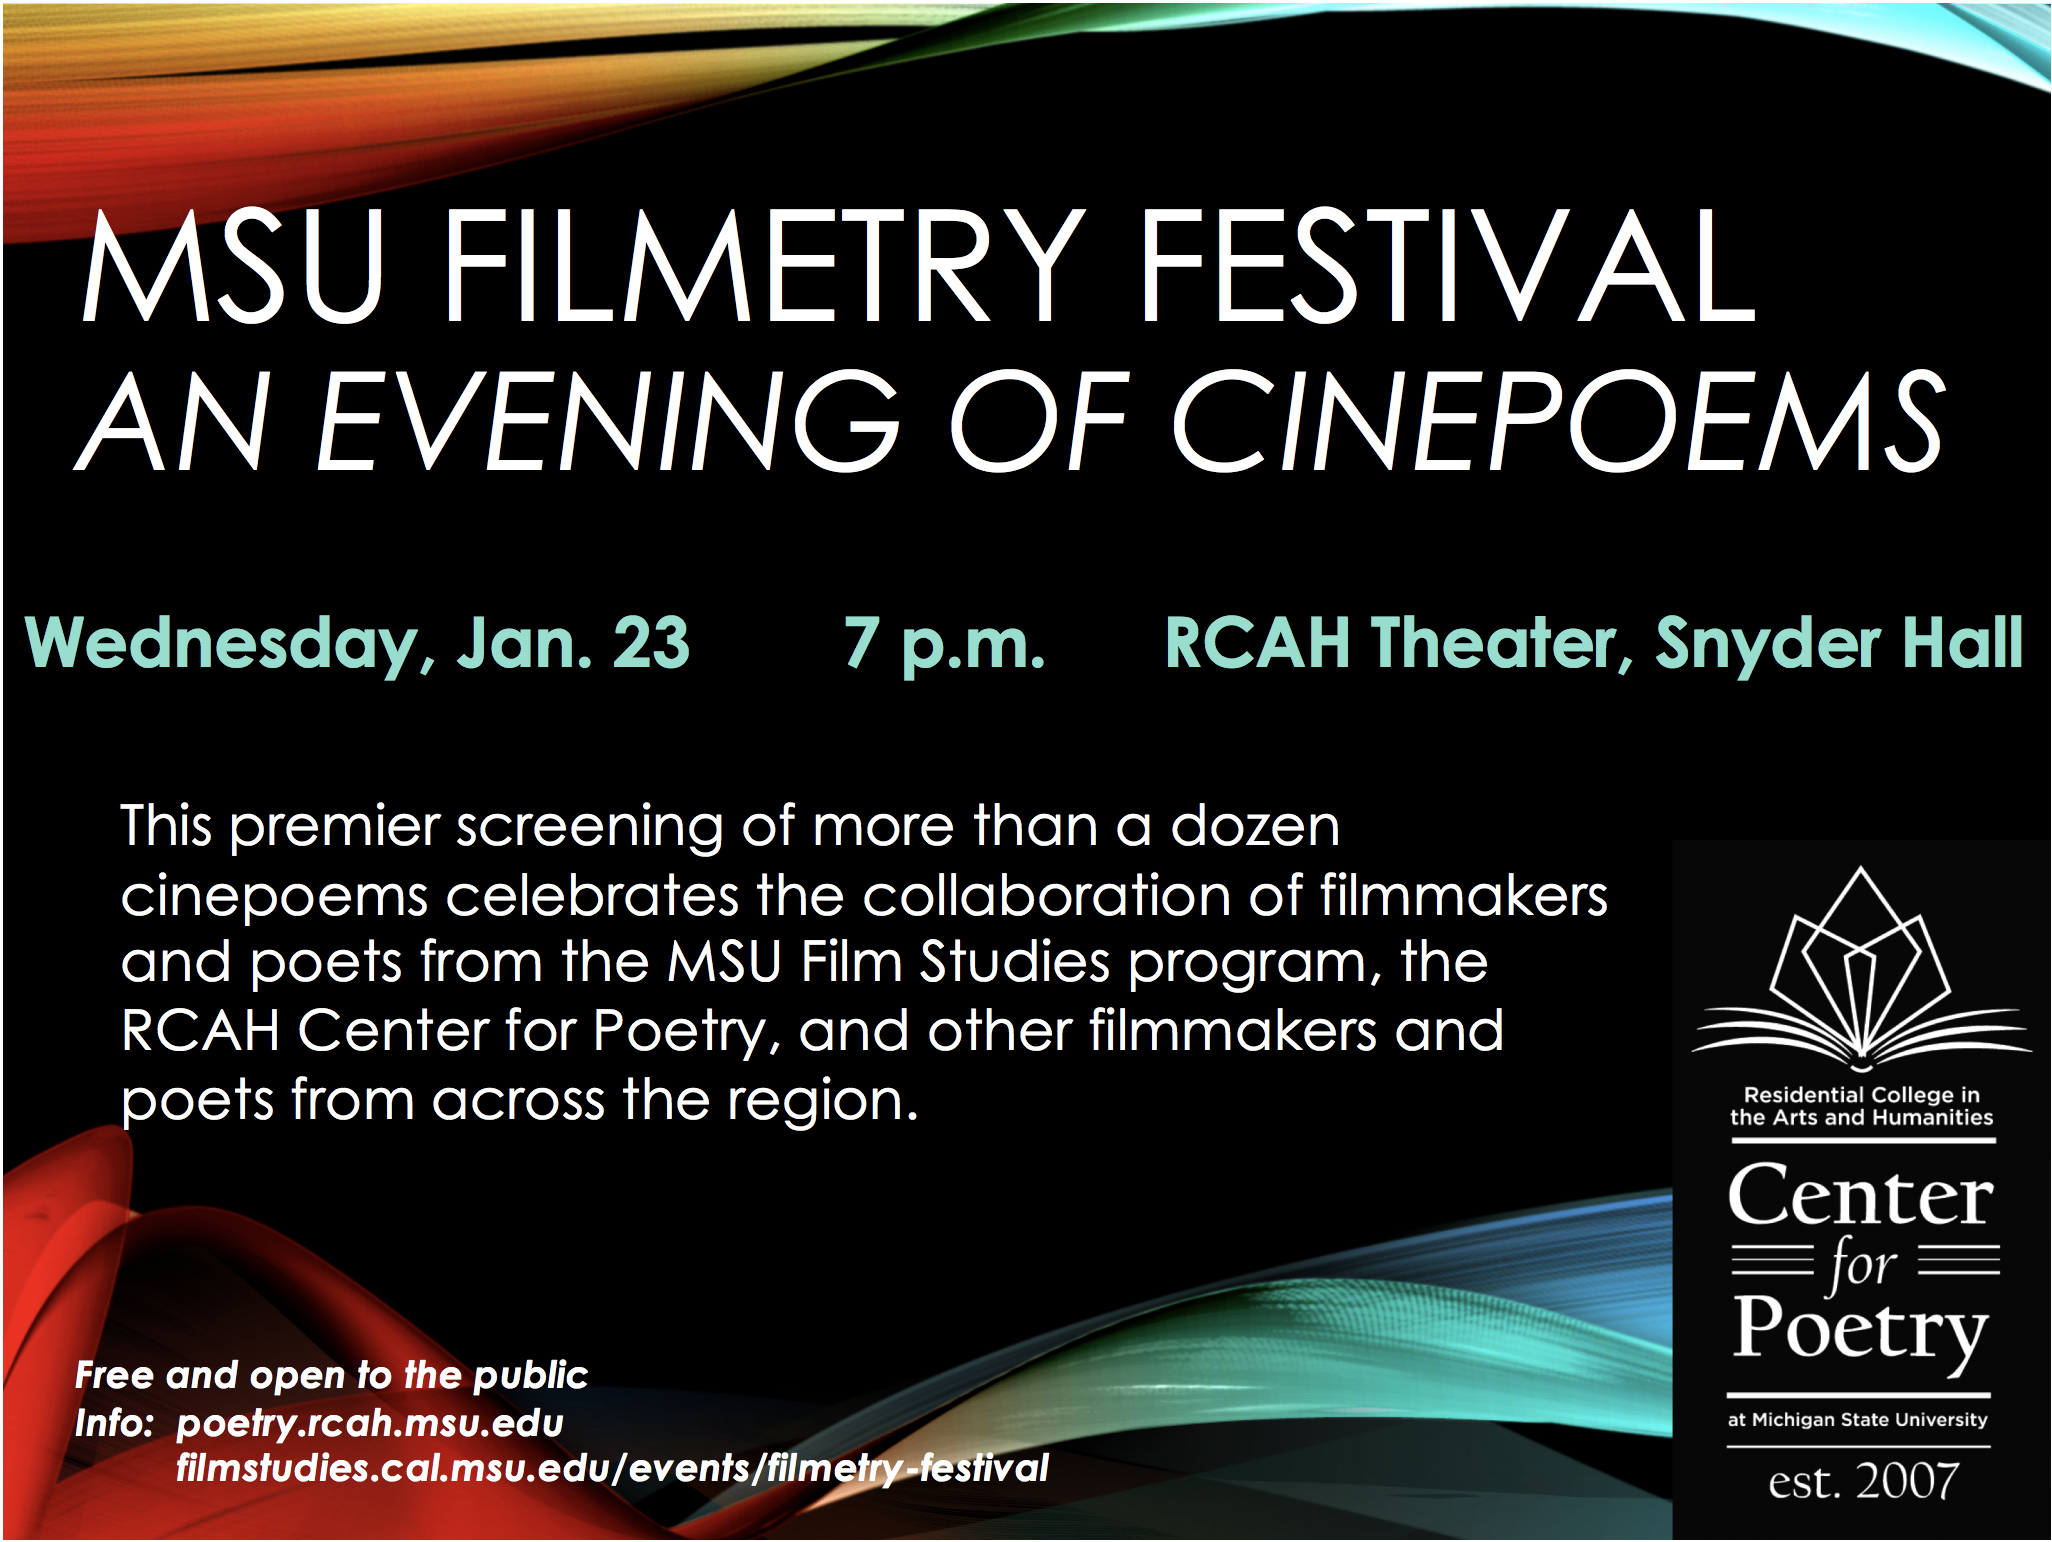 MSU Filmetry Festival: An Evening of Cinepoems @ RCAH Theater, Snyder Hall Basement | East Lansing | Michigan | United States